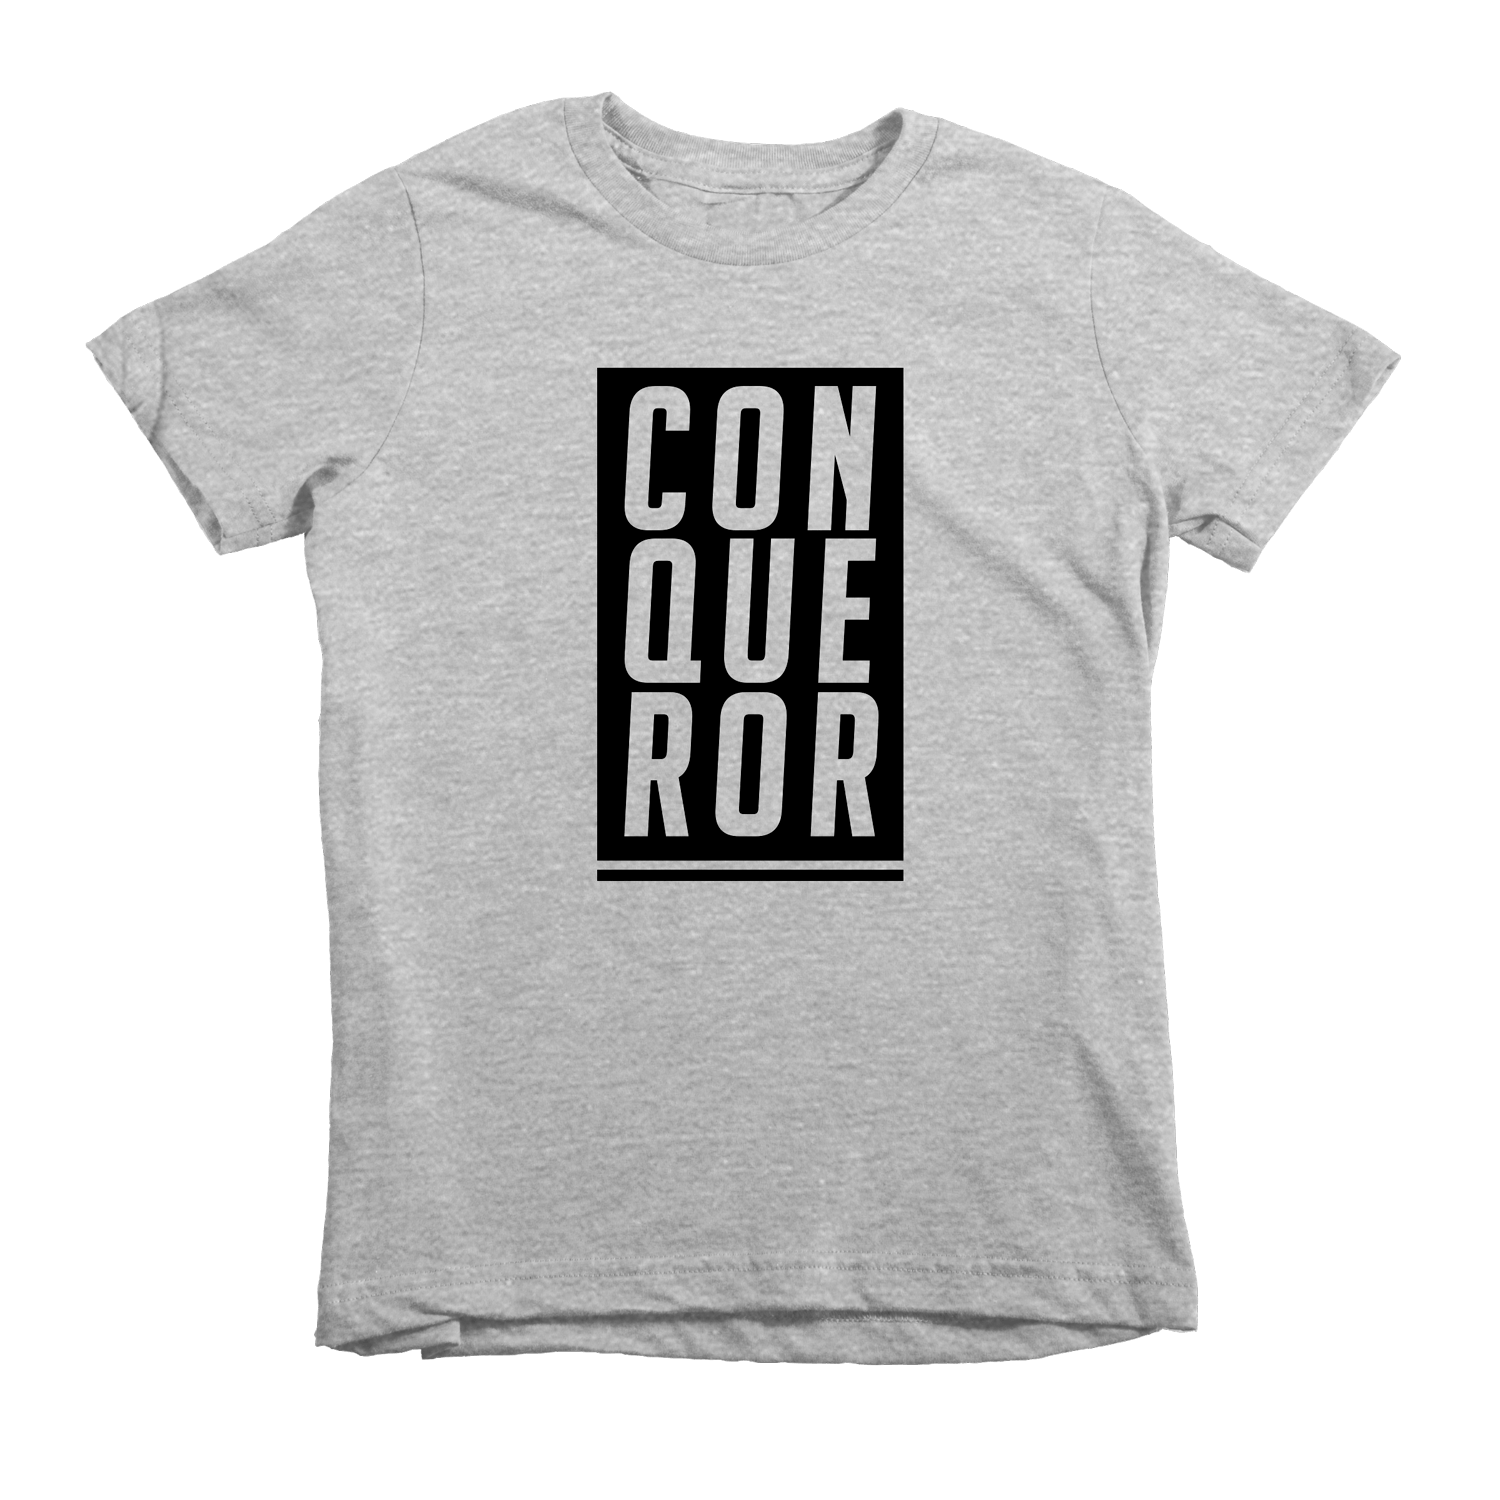 Conqueror Tee - Beacon Threads - 2T / Grey w/ Black Lettering - 2